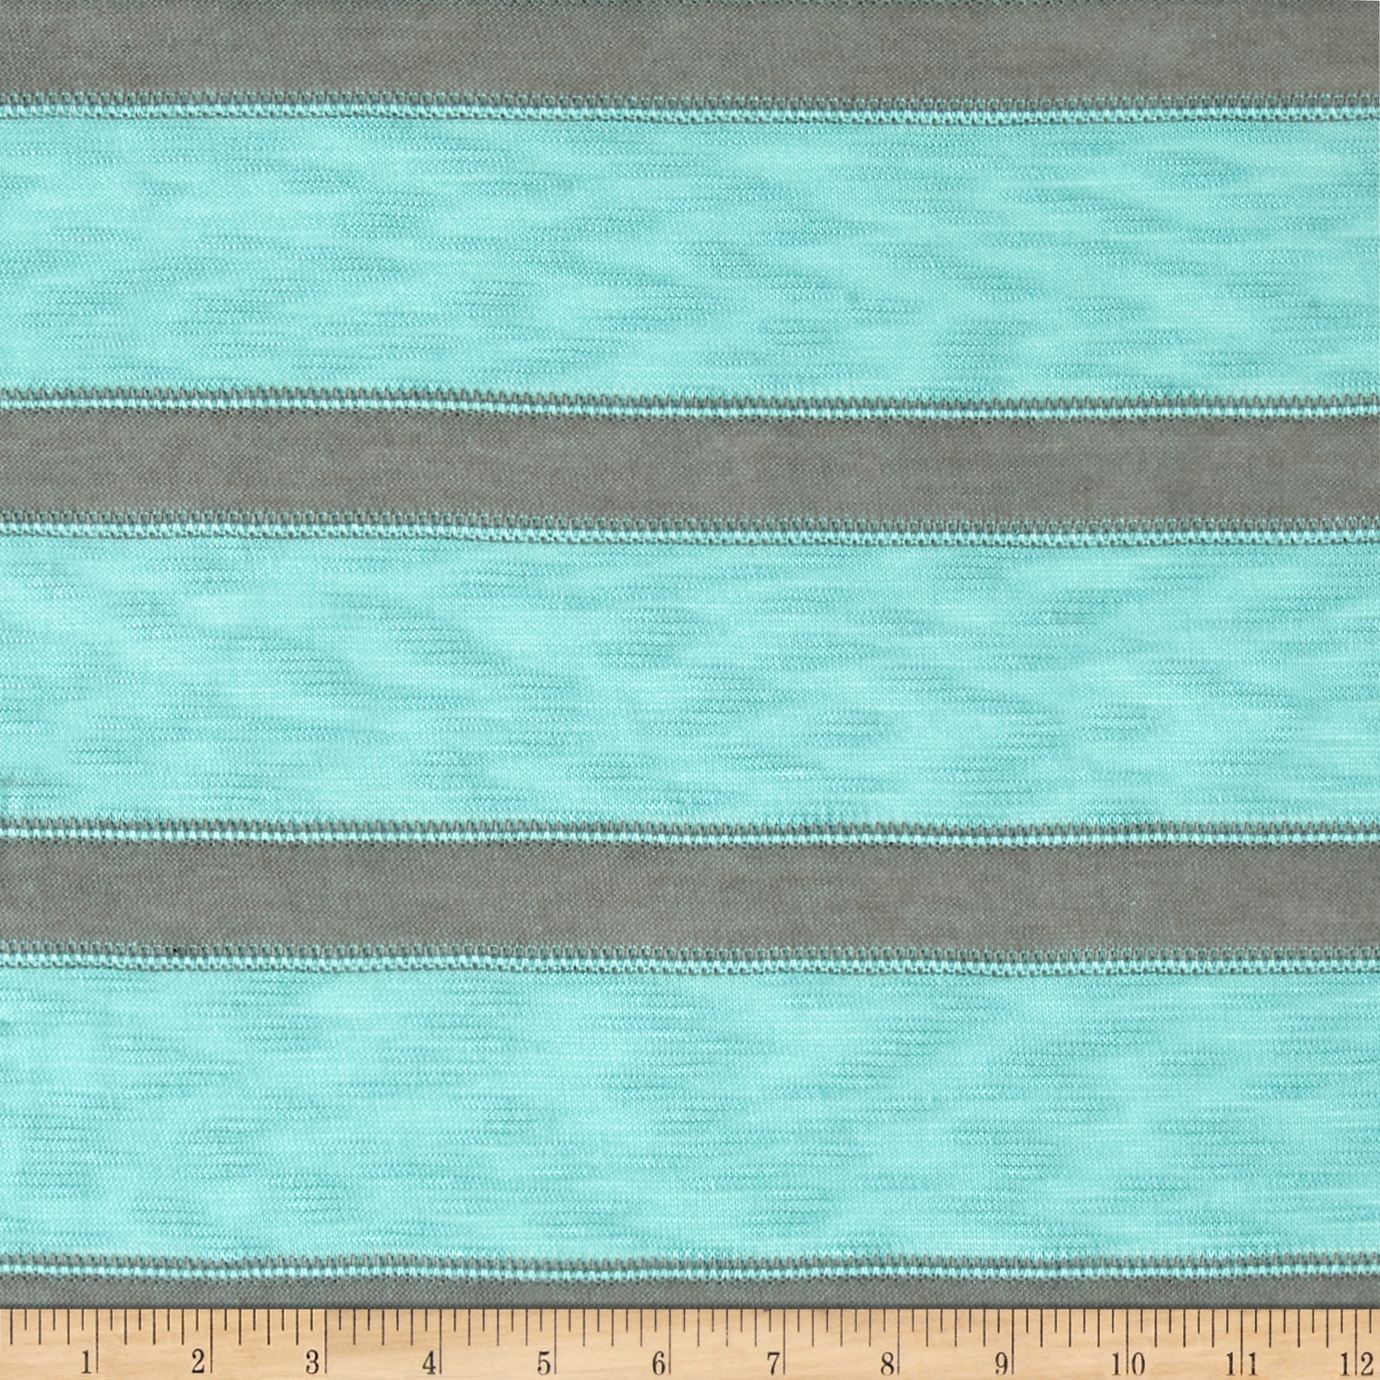 Lightweight Sweater Knit Gray/Turquoise Fabric by Bellagio in USA